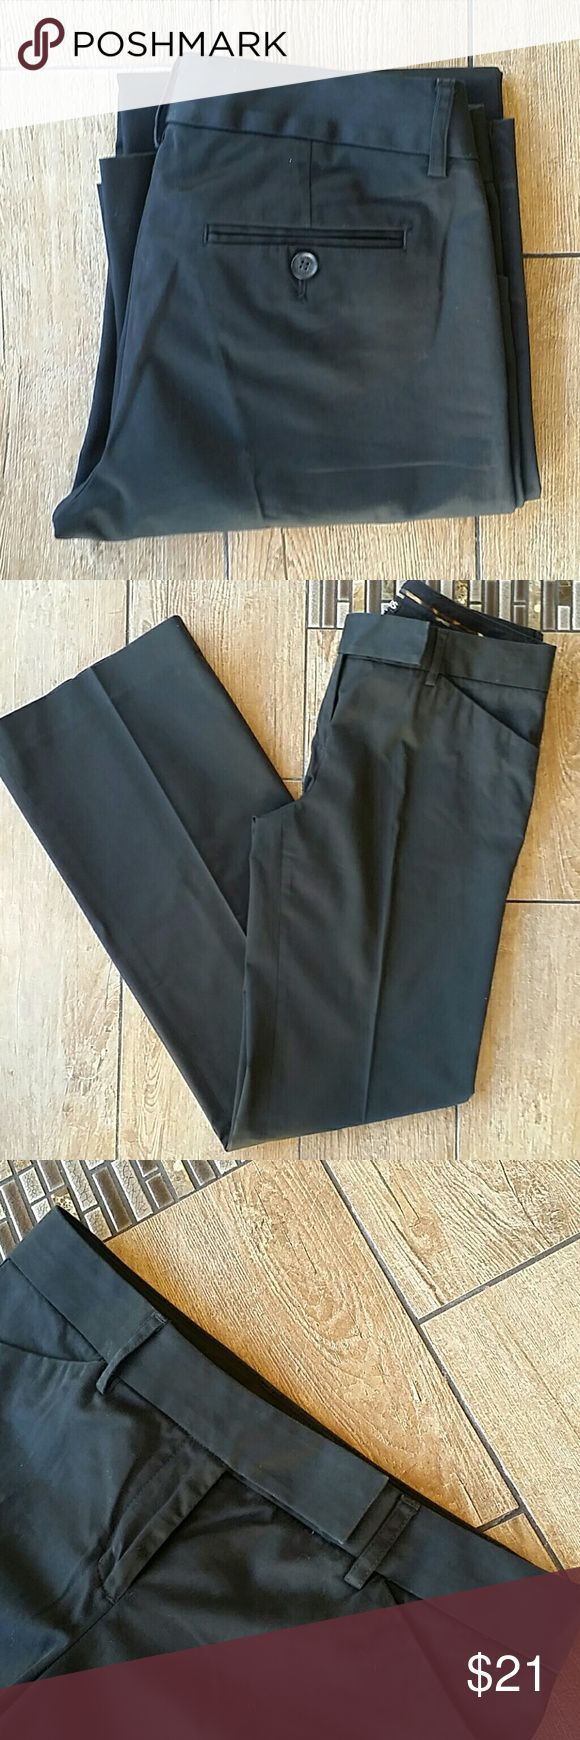 """EXPRESS EDITOR PANTS Black dress pants """"Editor"""" cut Double clasp zip close Belt loops Front slant pockets Rear functional pockets Almost has a sheen to pant 15""""across top of waist 32"""" inseam 9.5"""" leg opening at hem No rips, stains or snags  💥Express store not outlet Express Pants Boot Cut & Flare"""